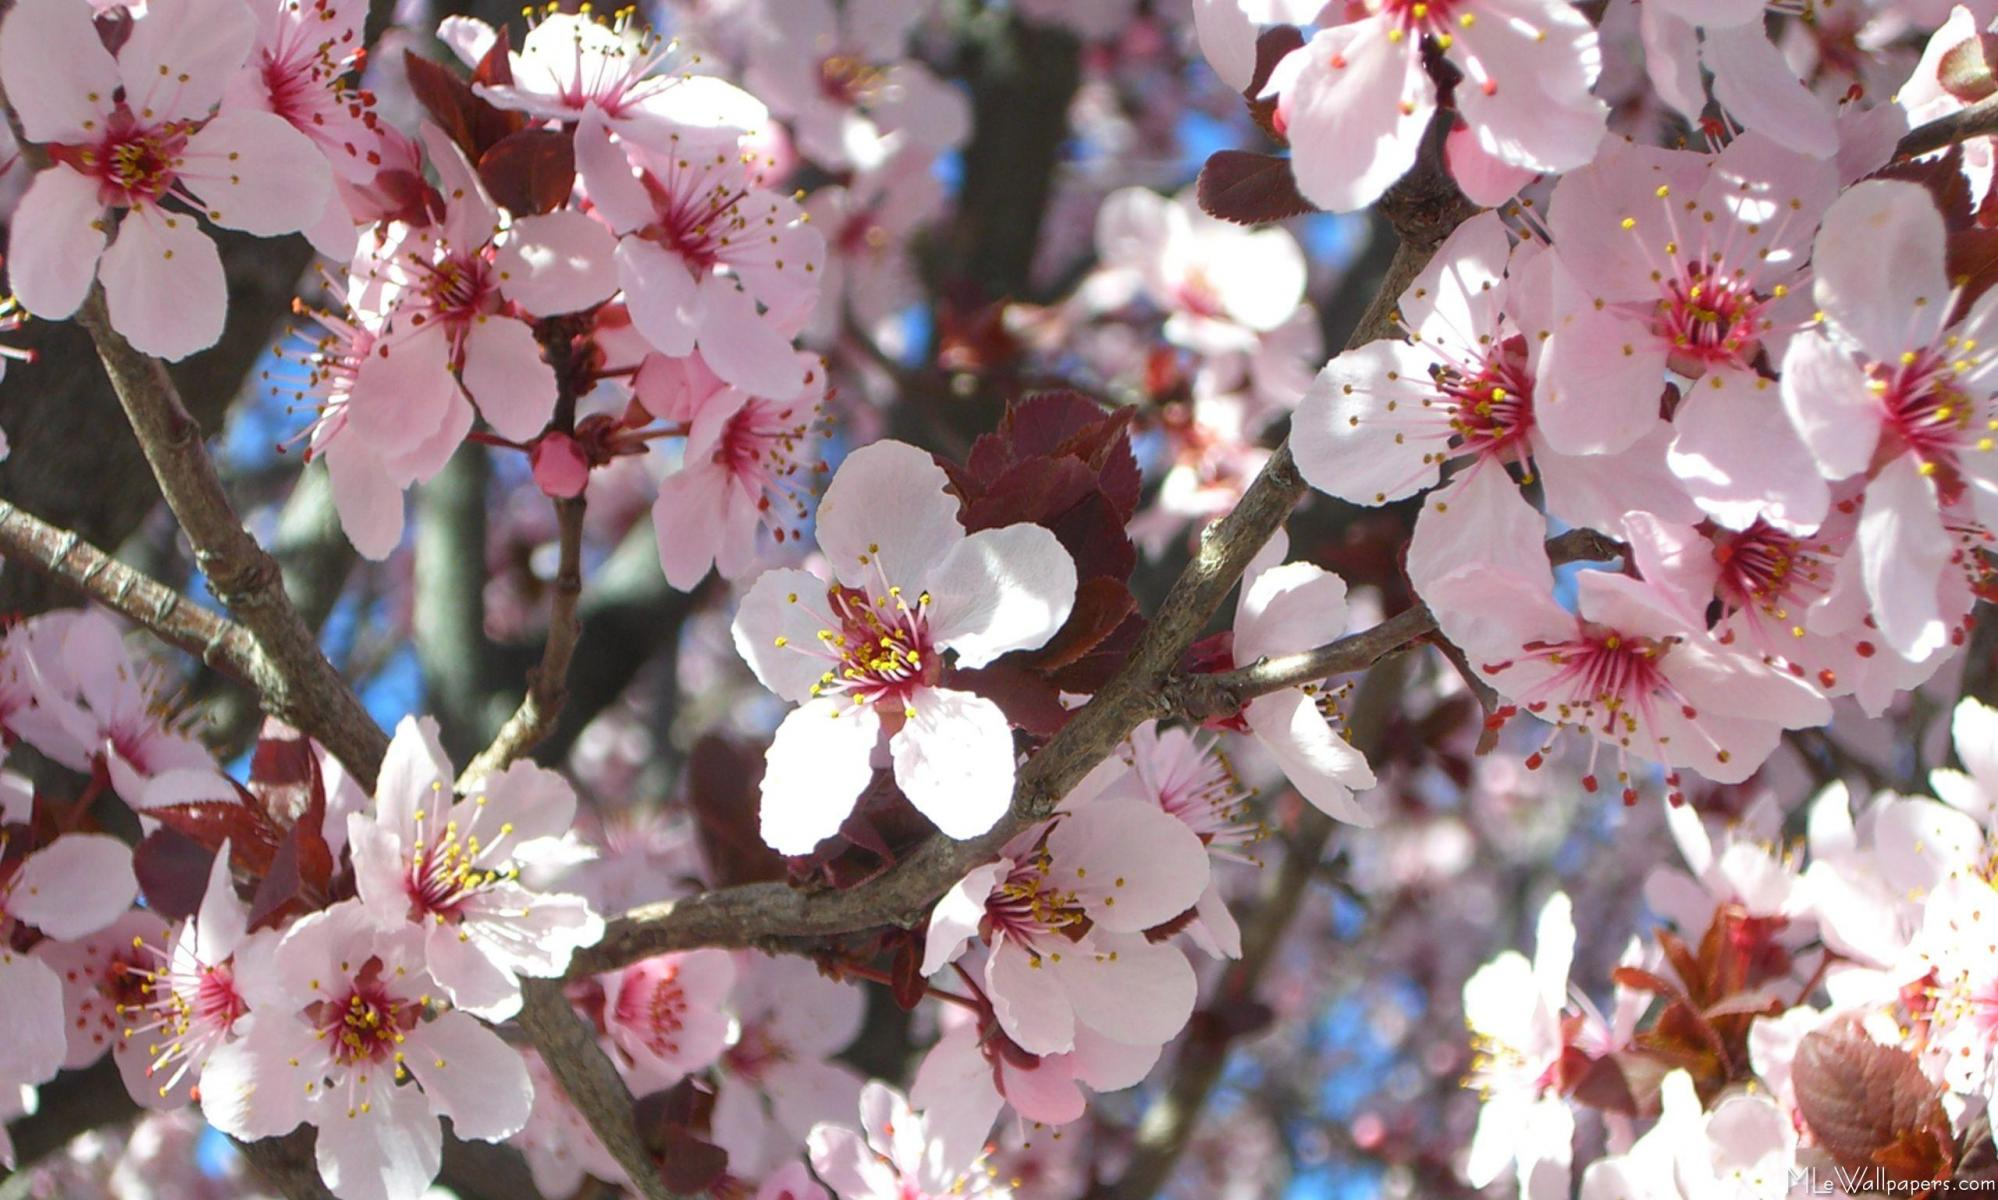 Mlewallpapers Branch Of Pink Blossoms